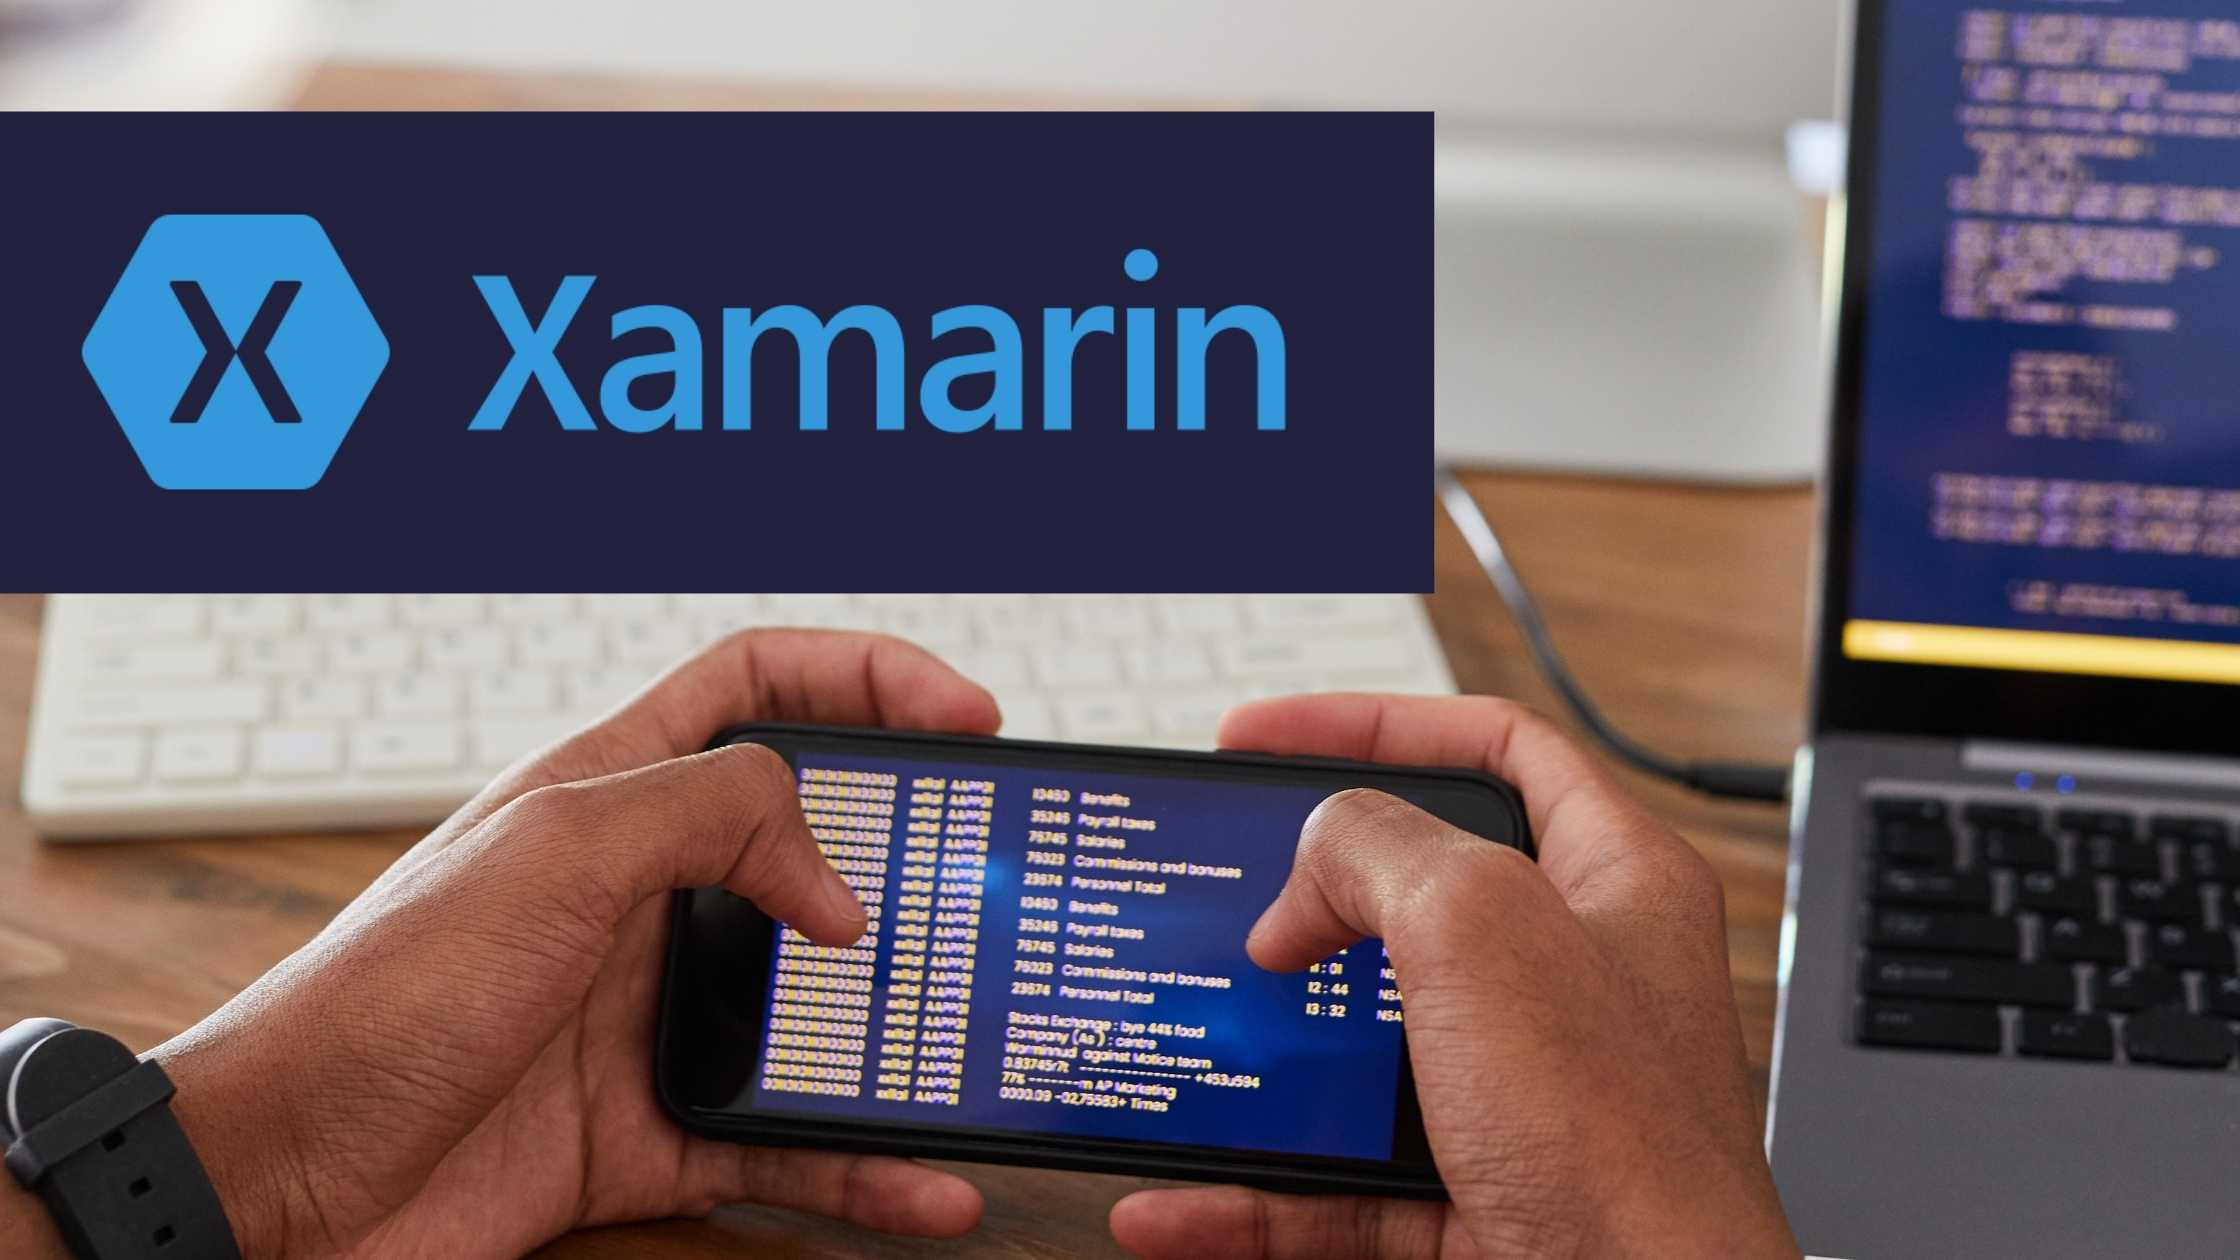 Close up of hands holding mobile phone; laptop and keyboard in background; Dark blue rectangle with Xamarin logo and text